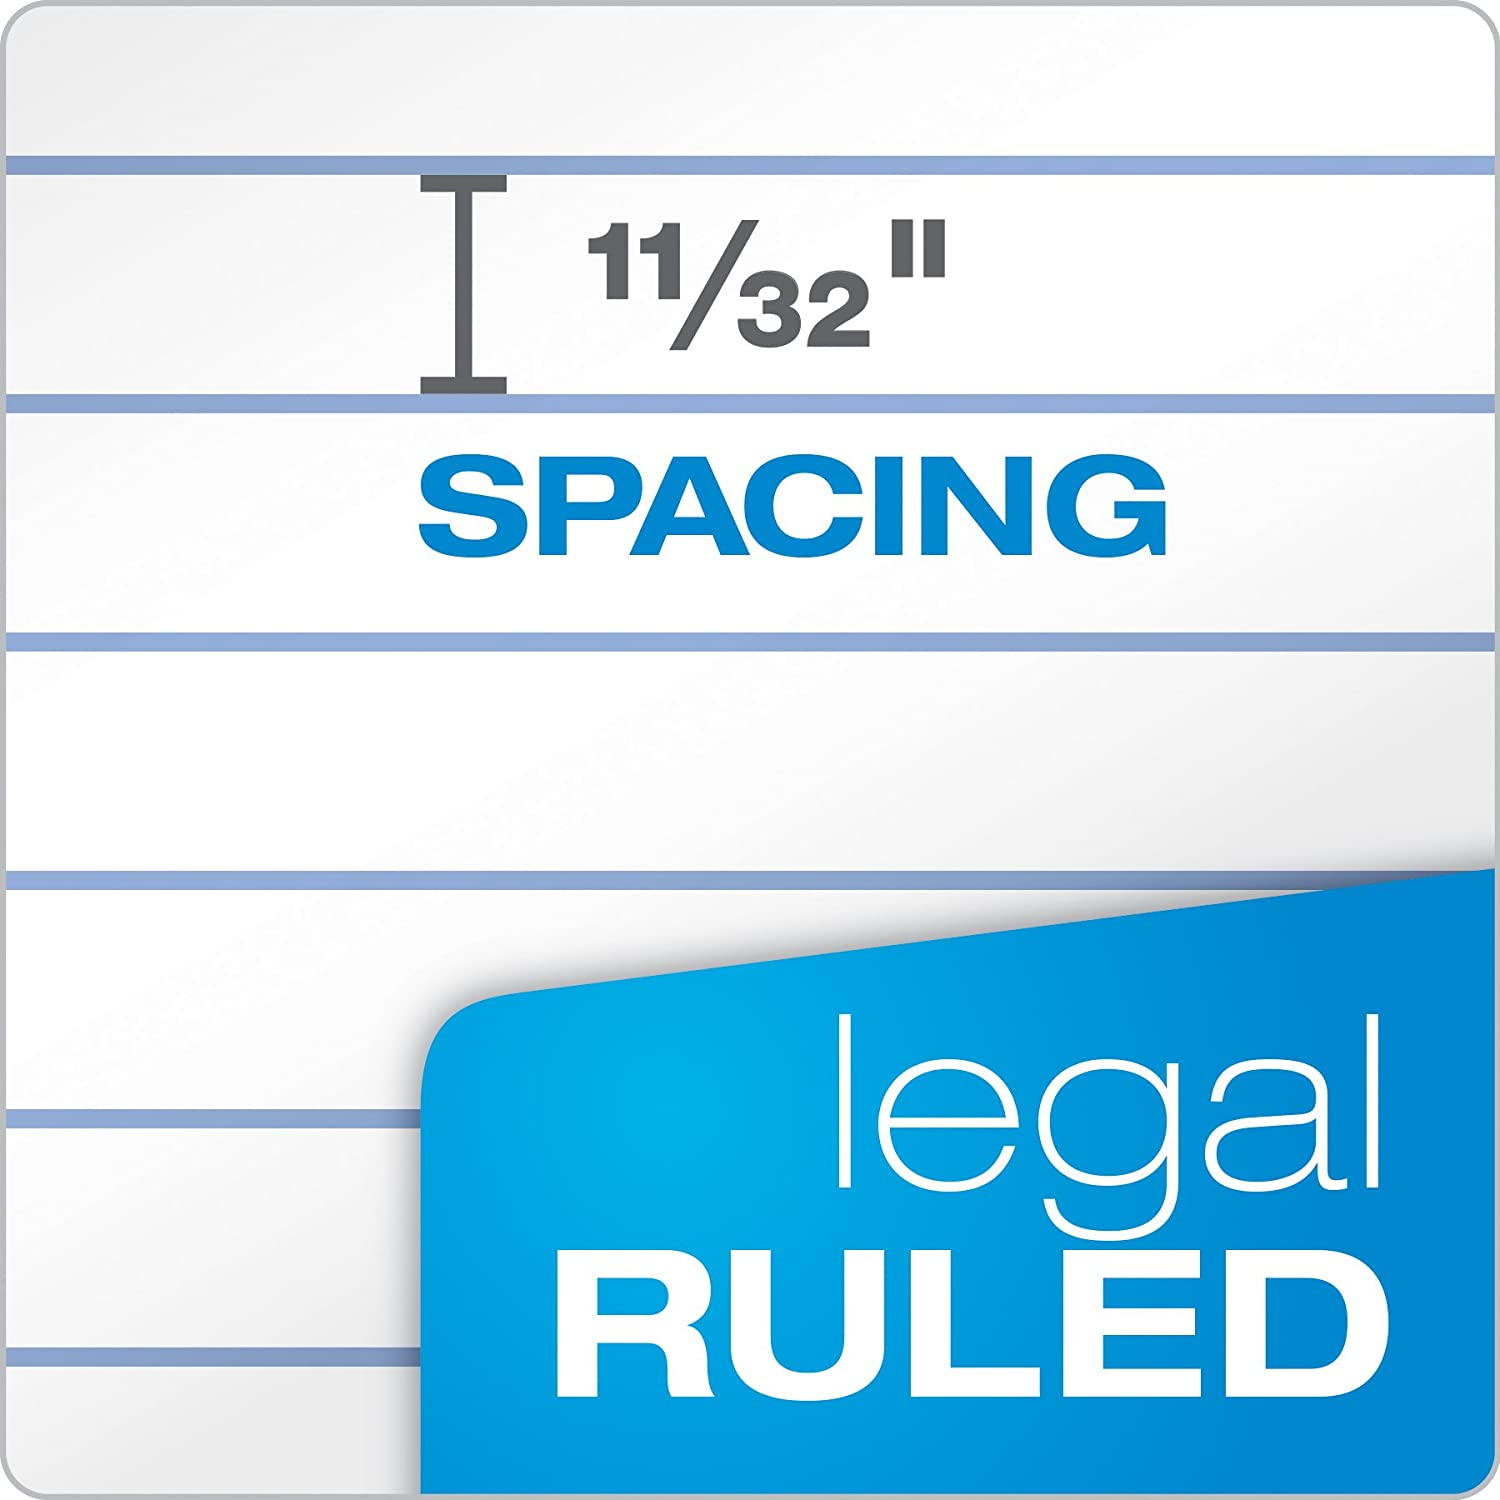 50 Sheets per Pad 20-360 Ampad Perforated Pad Legal Ruling 8-1//2 x 11-3//4 White